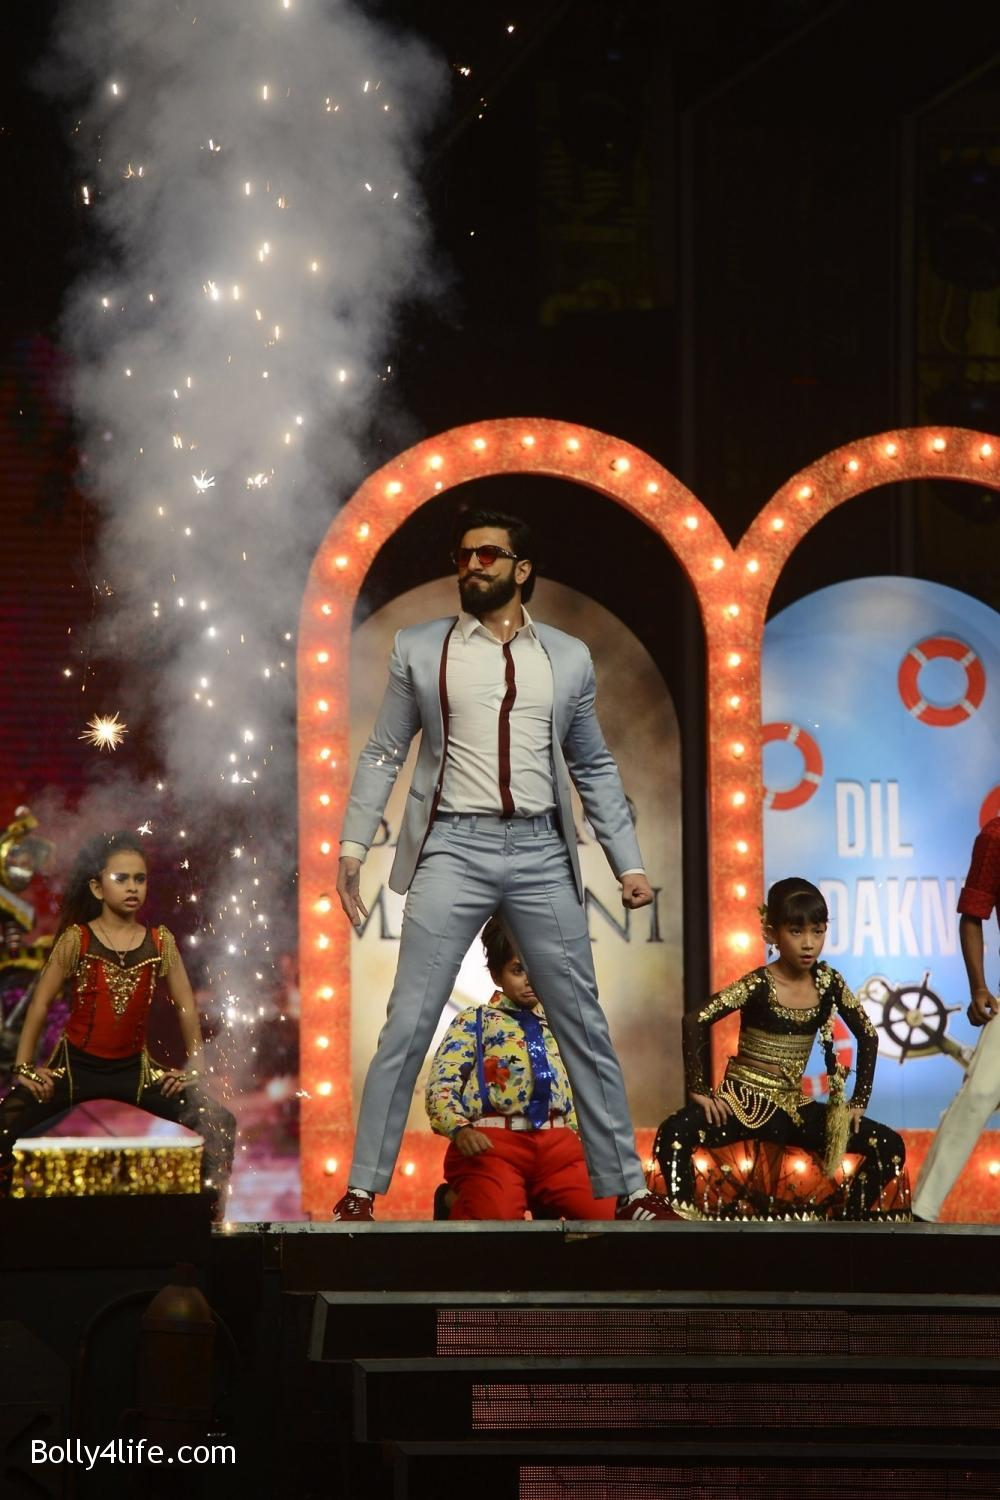 Ranveer-Singh-and-Vaani-Kapoor-during-the-promotion-of-film-Befikre-on-the-sets-of-Sony-TV-reality-show-Super-Dancer-6.jpg